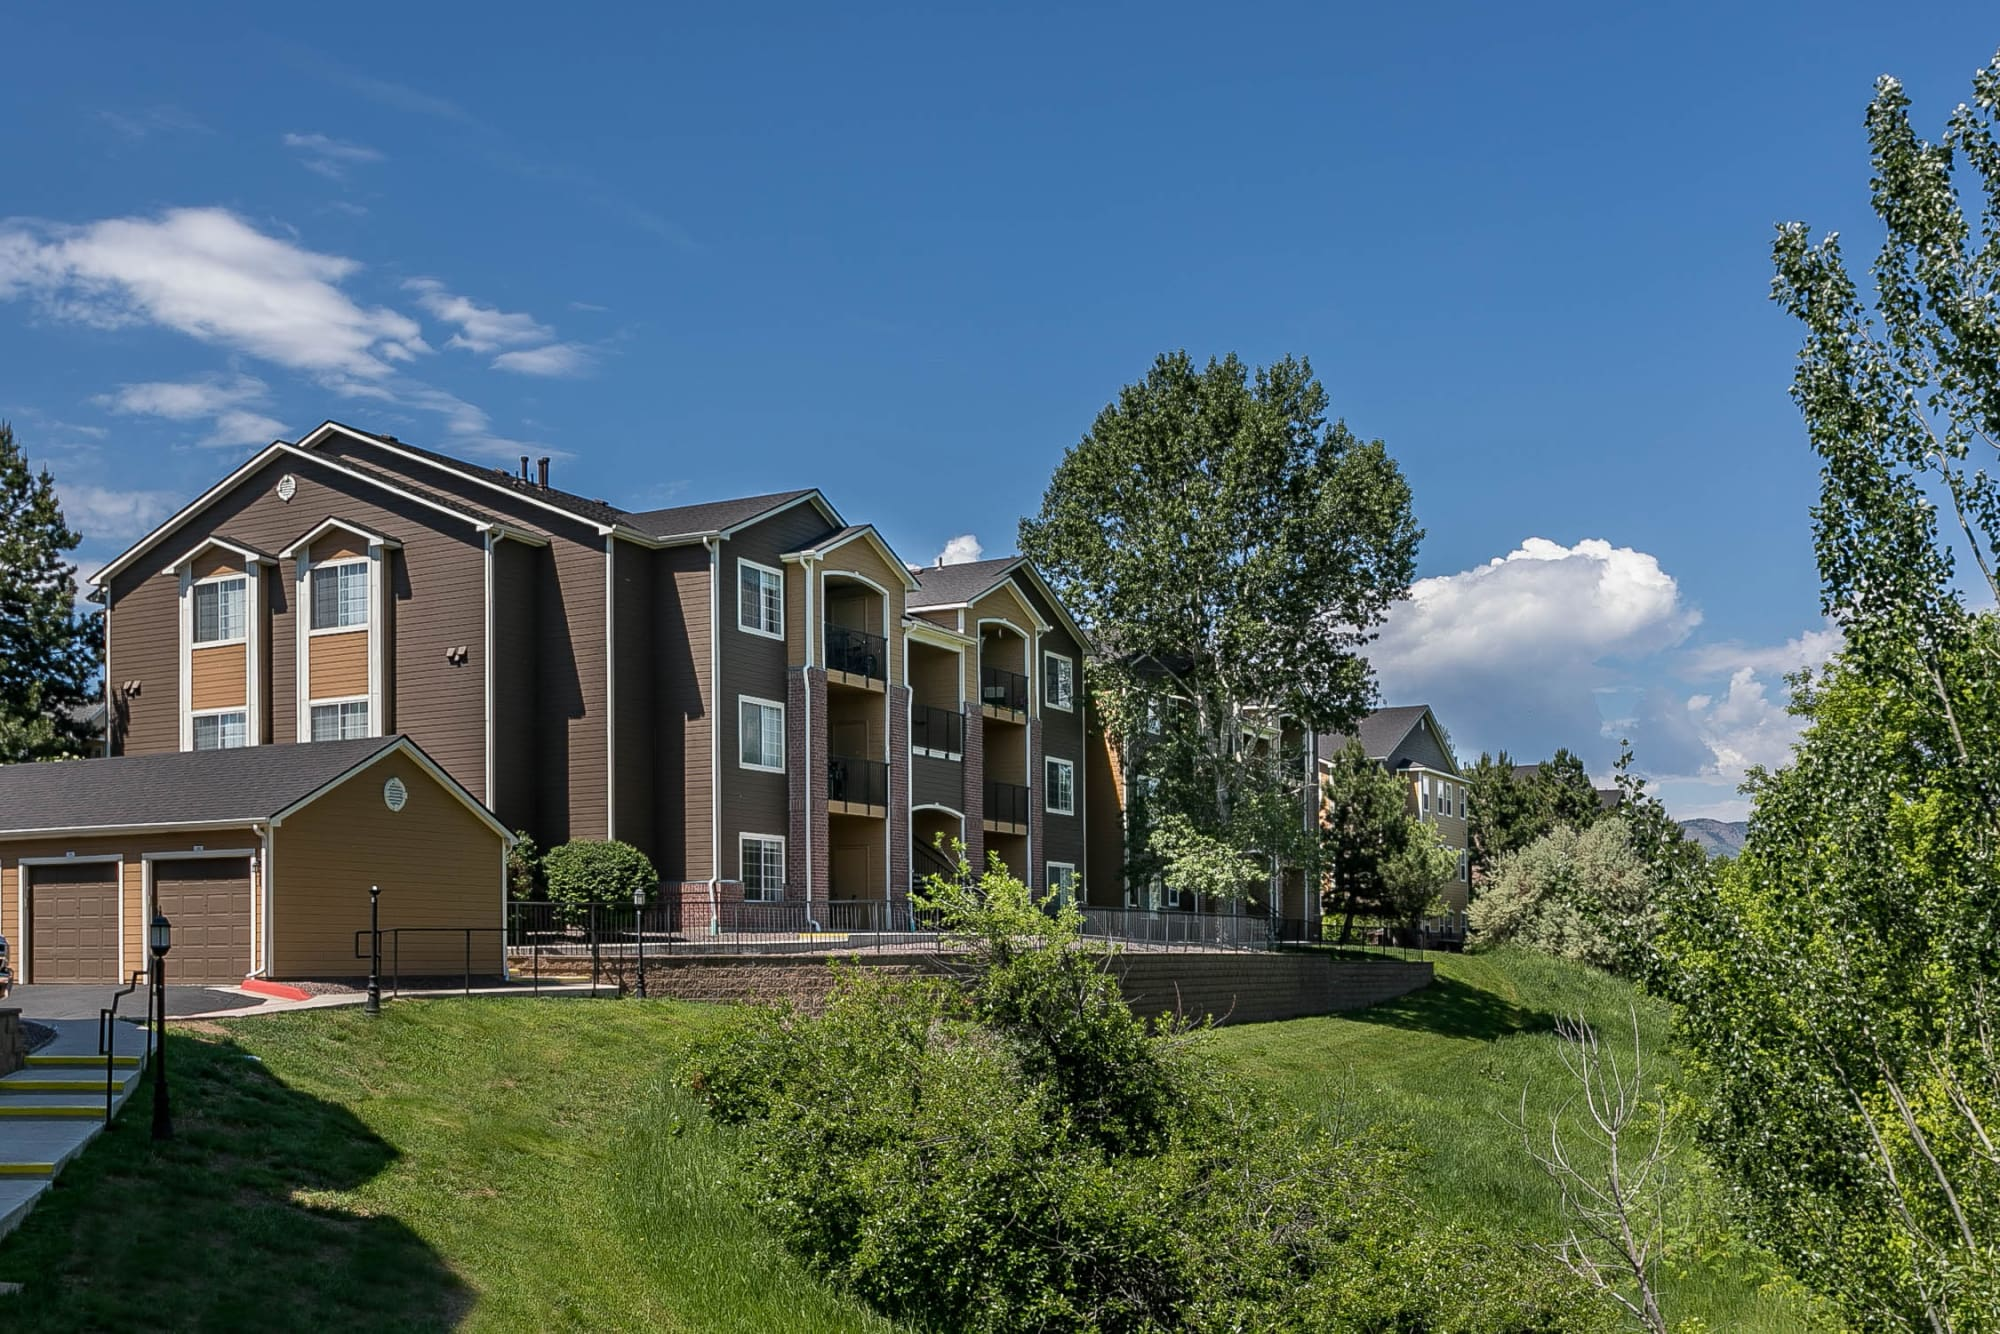 The exterior of the building surrounded by lush landscaping at The Crossings at Bear Creek Apartments in Lakewood, Colorado